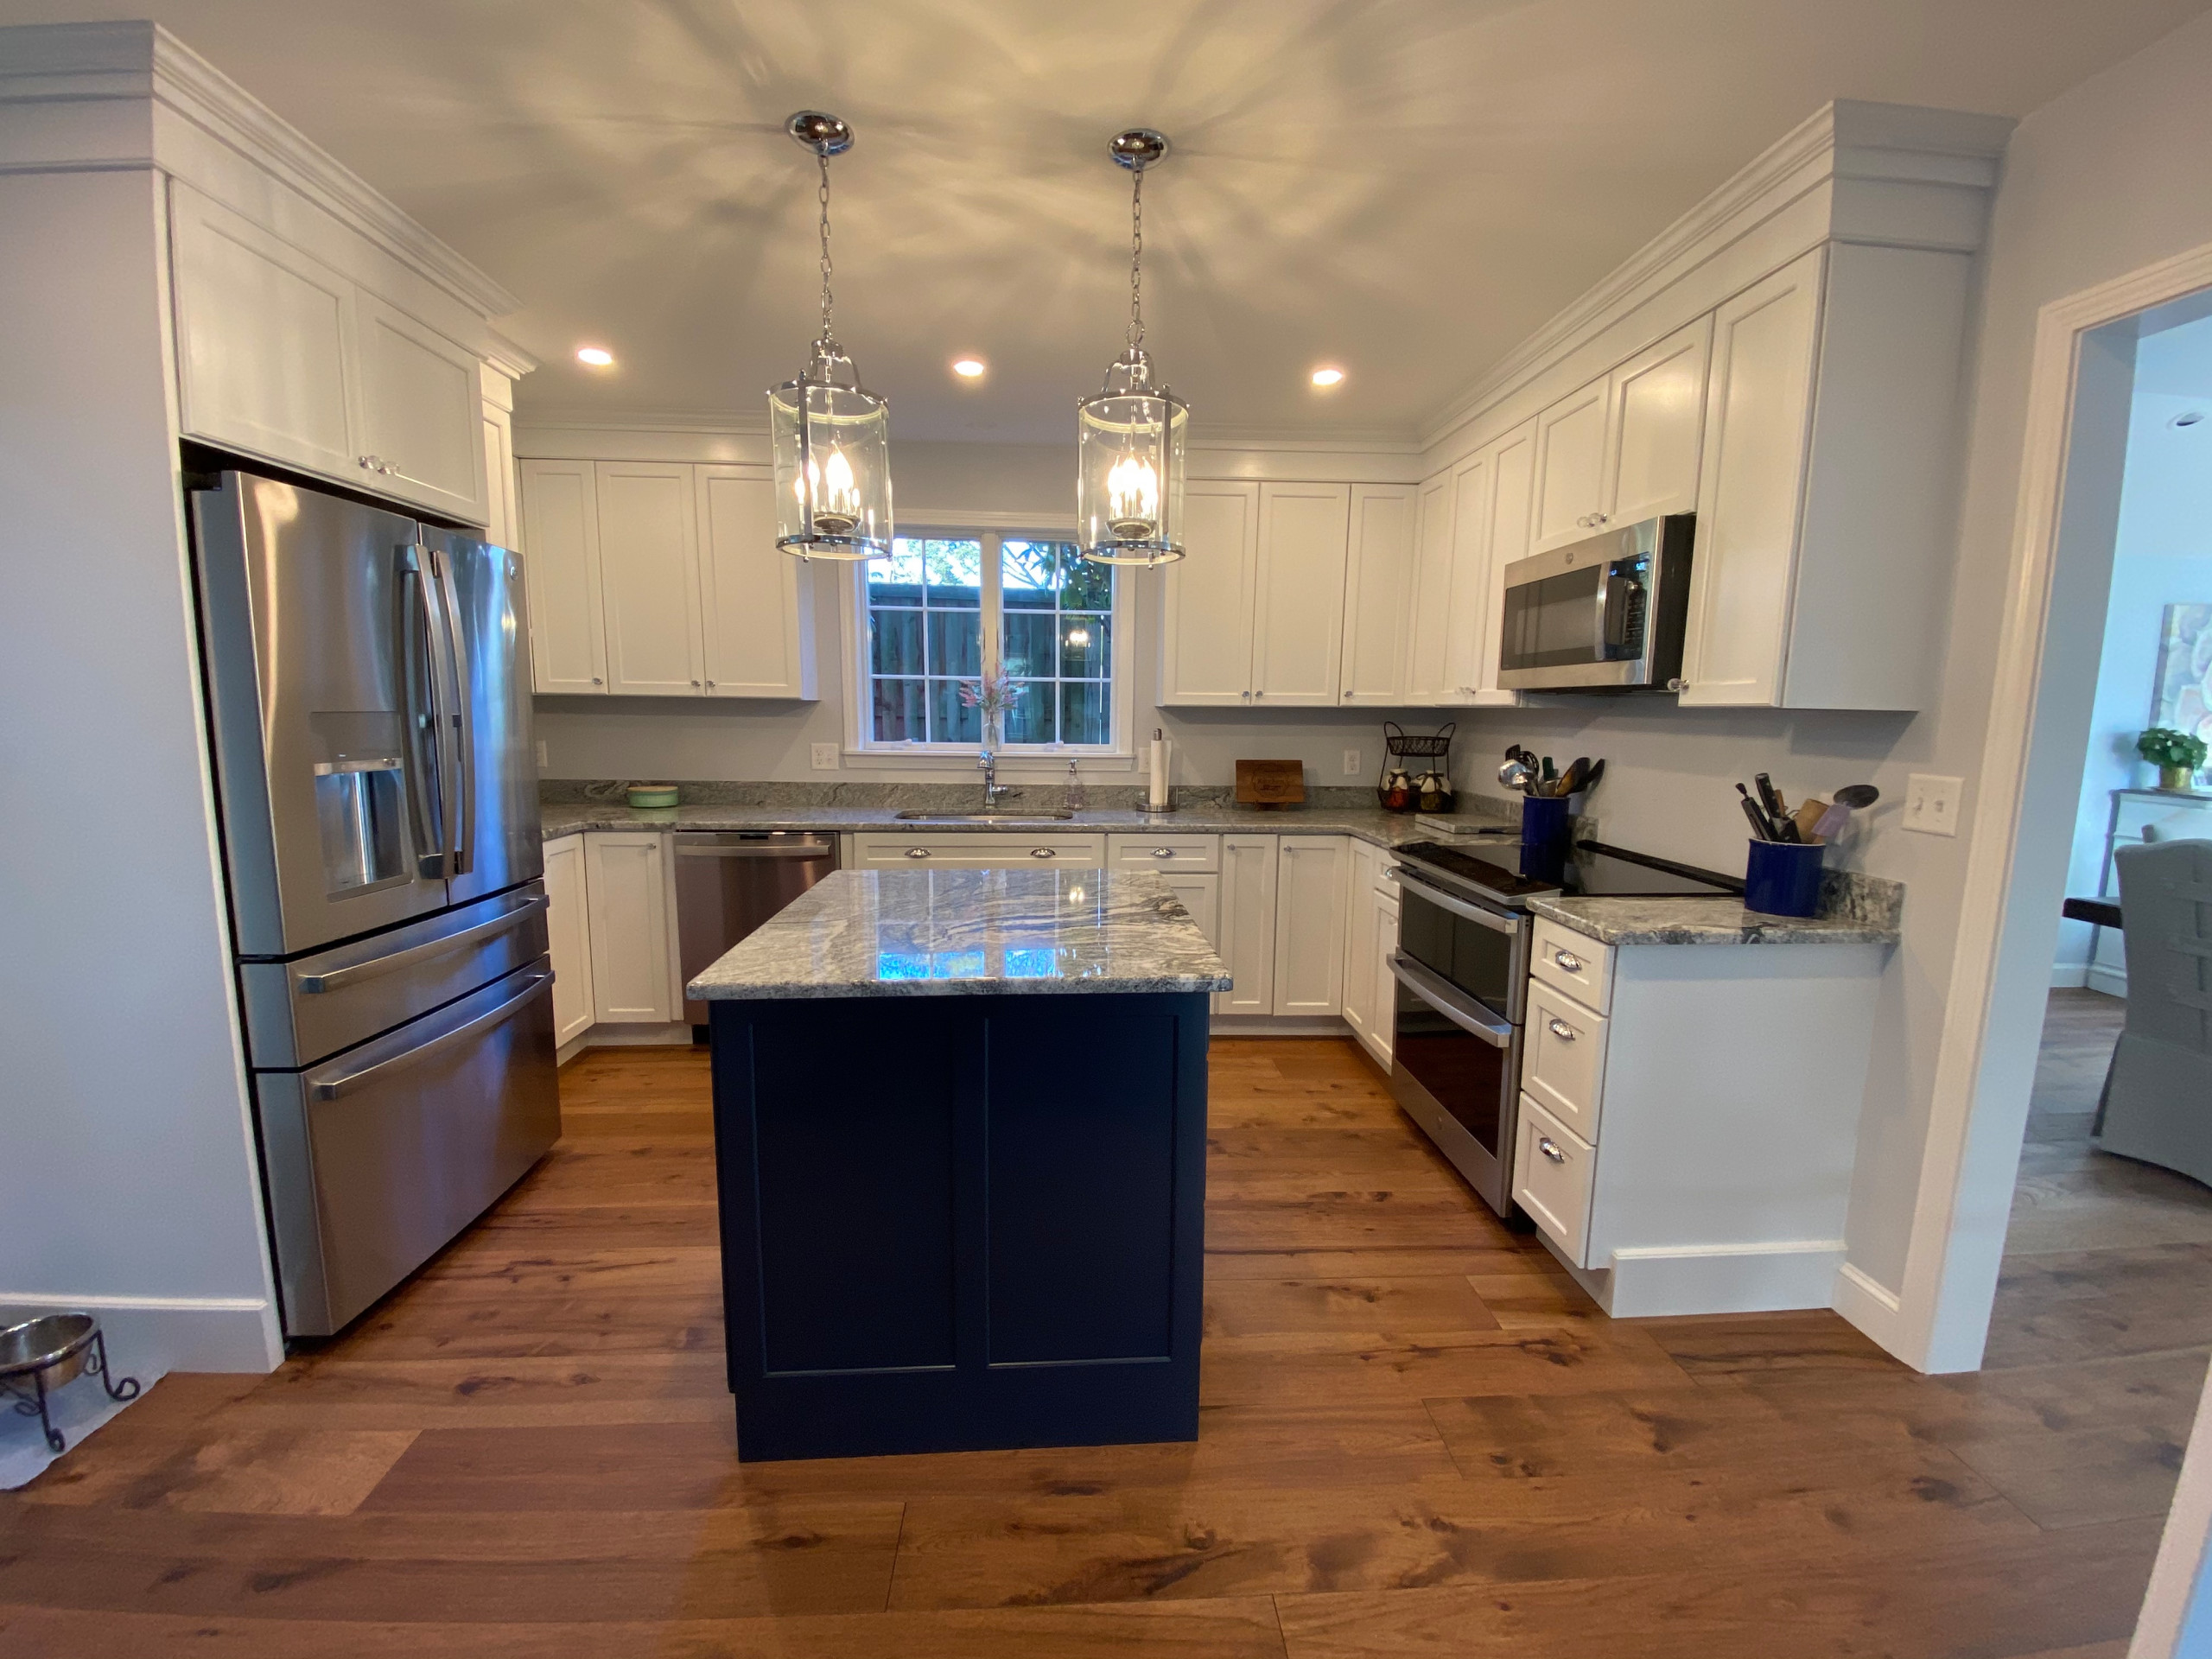 A lot of kitchen in a small space